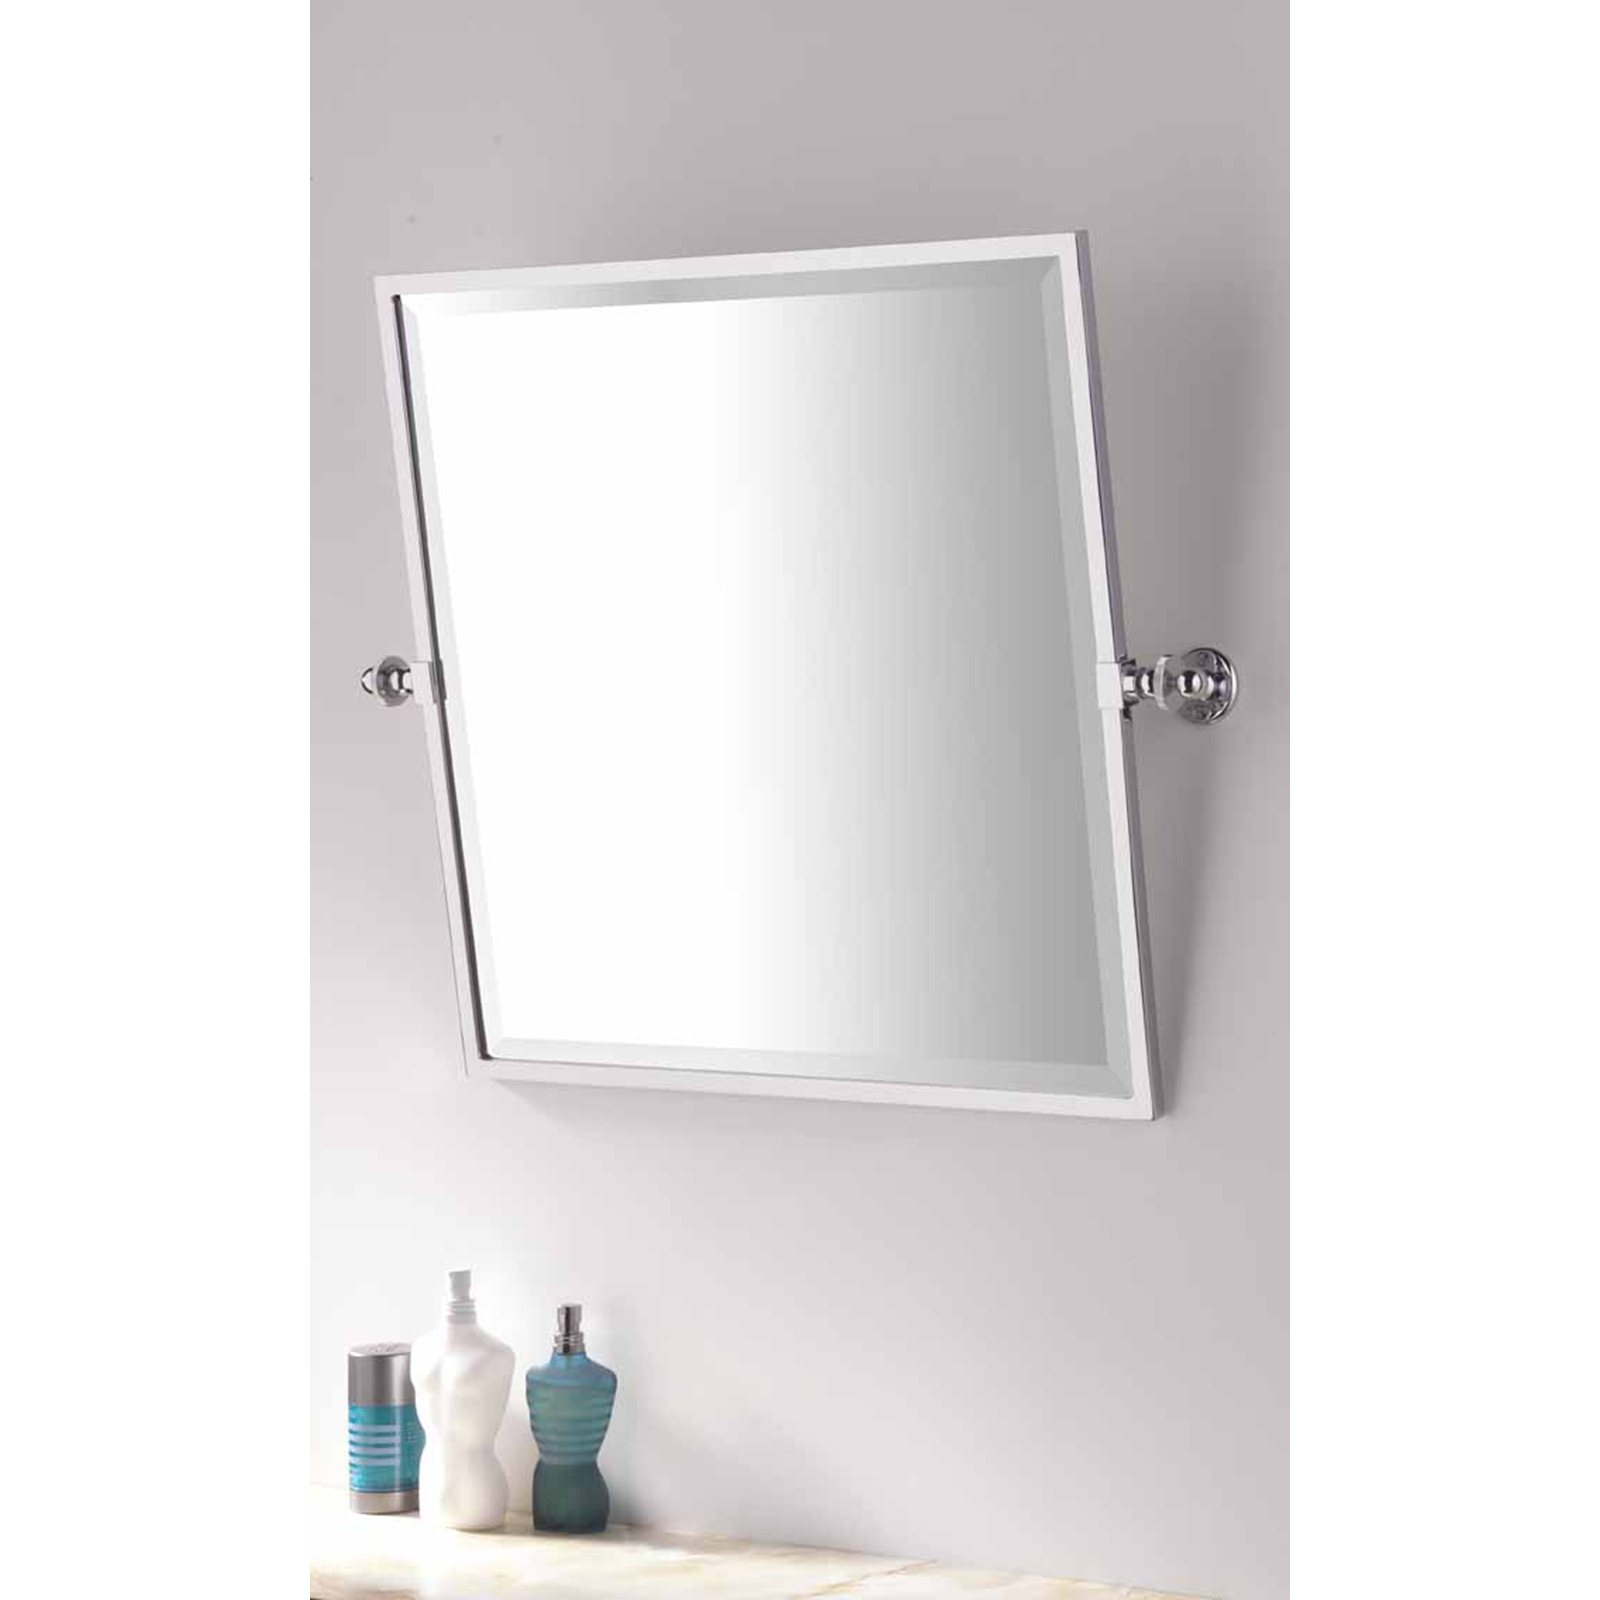 Tilting Wall Mirrors Intended For Popular Bathroom Square Framed Tilting Mirror (View 1 of 20)